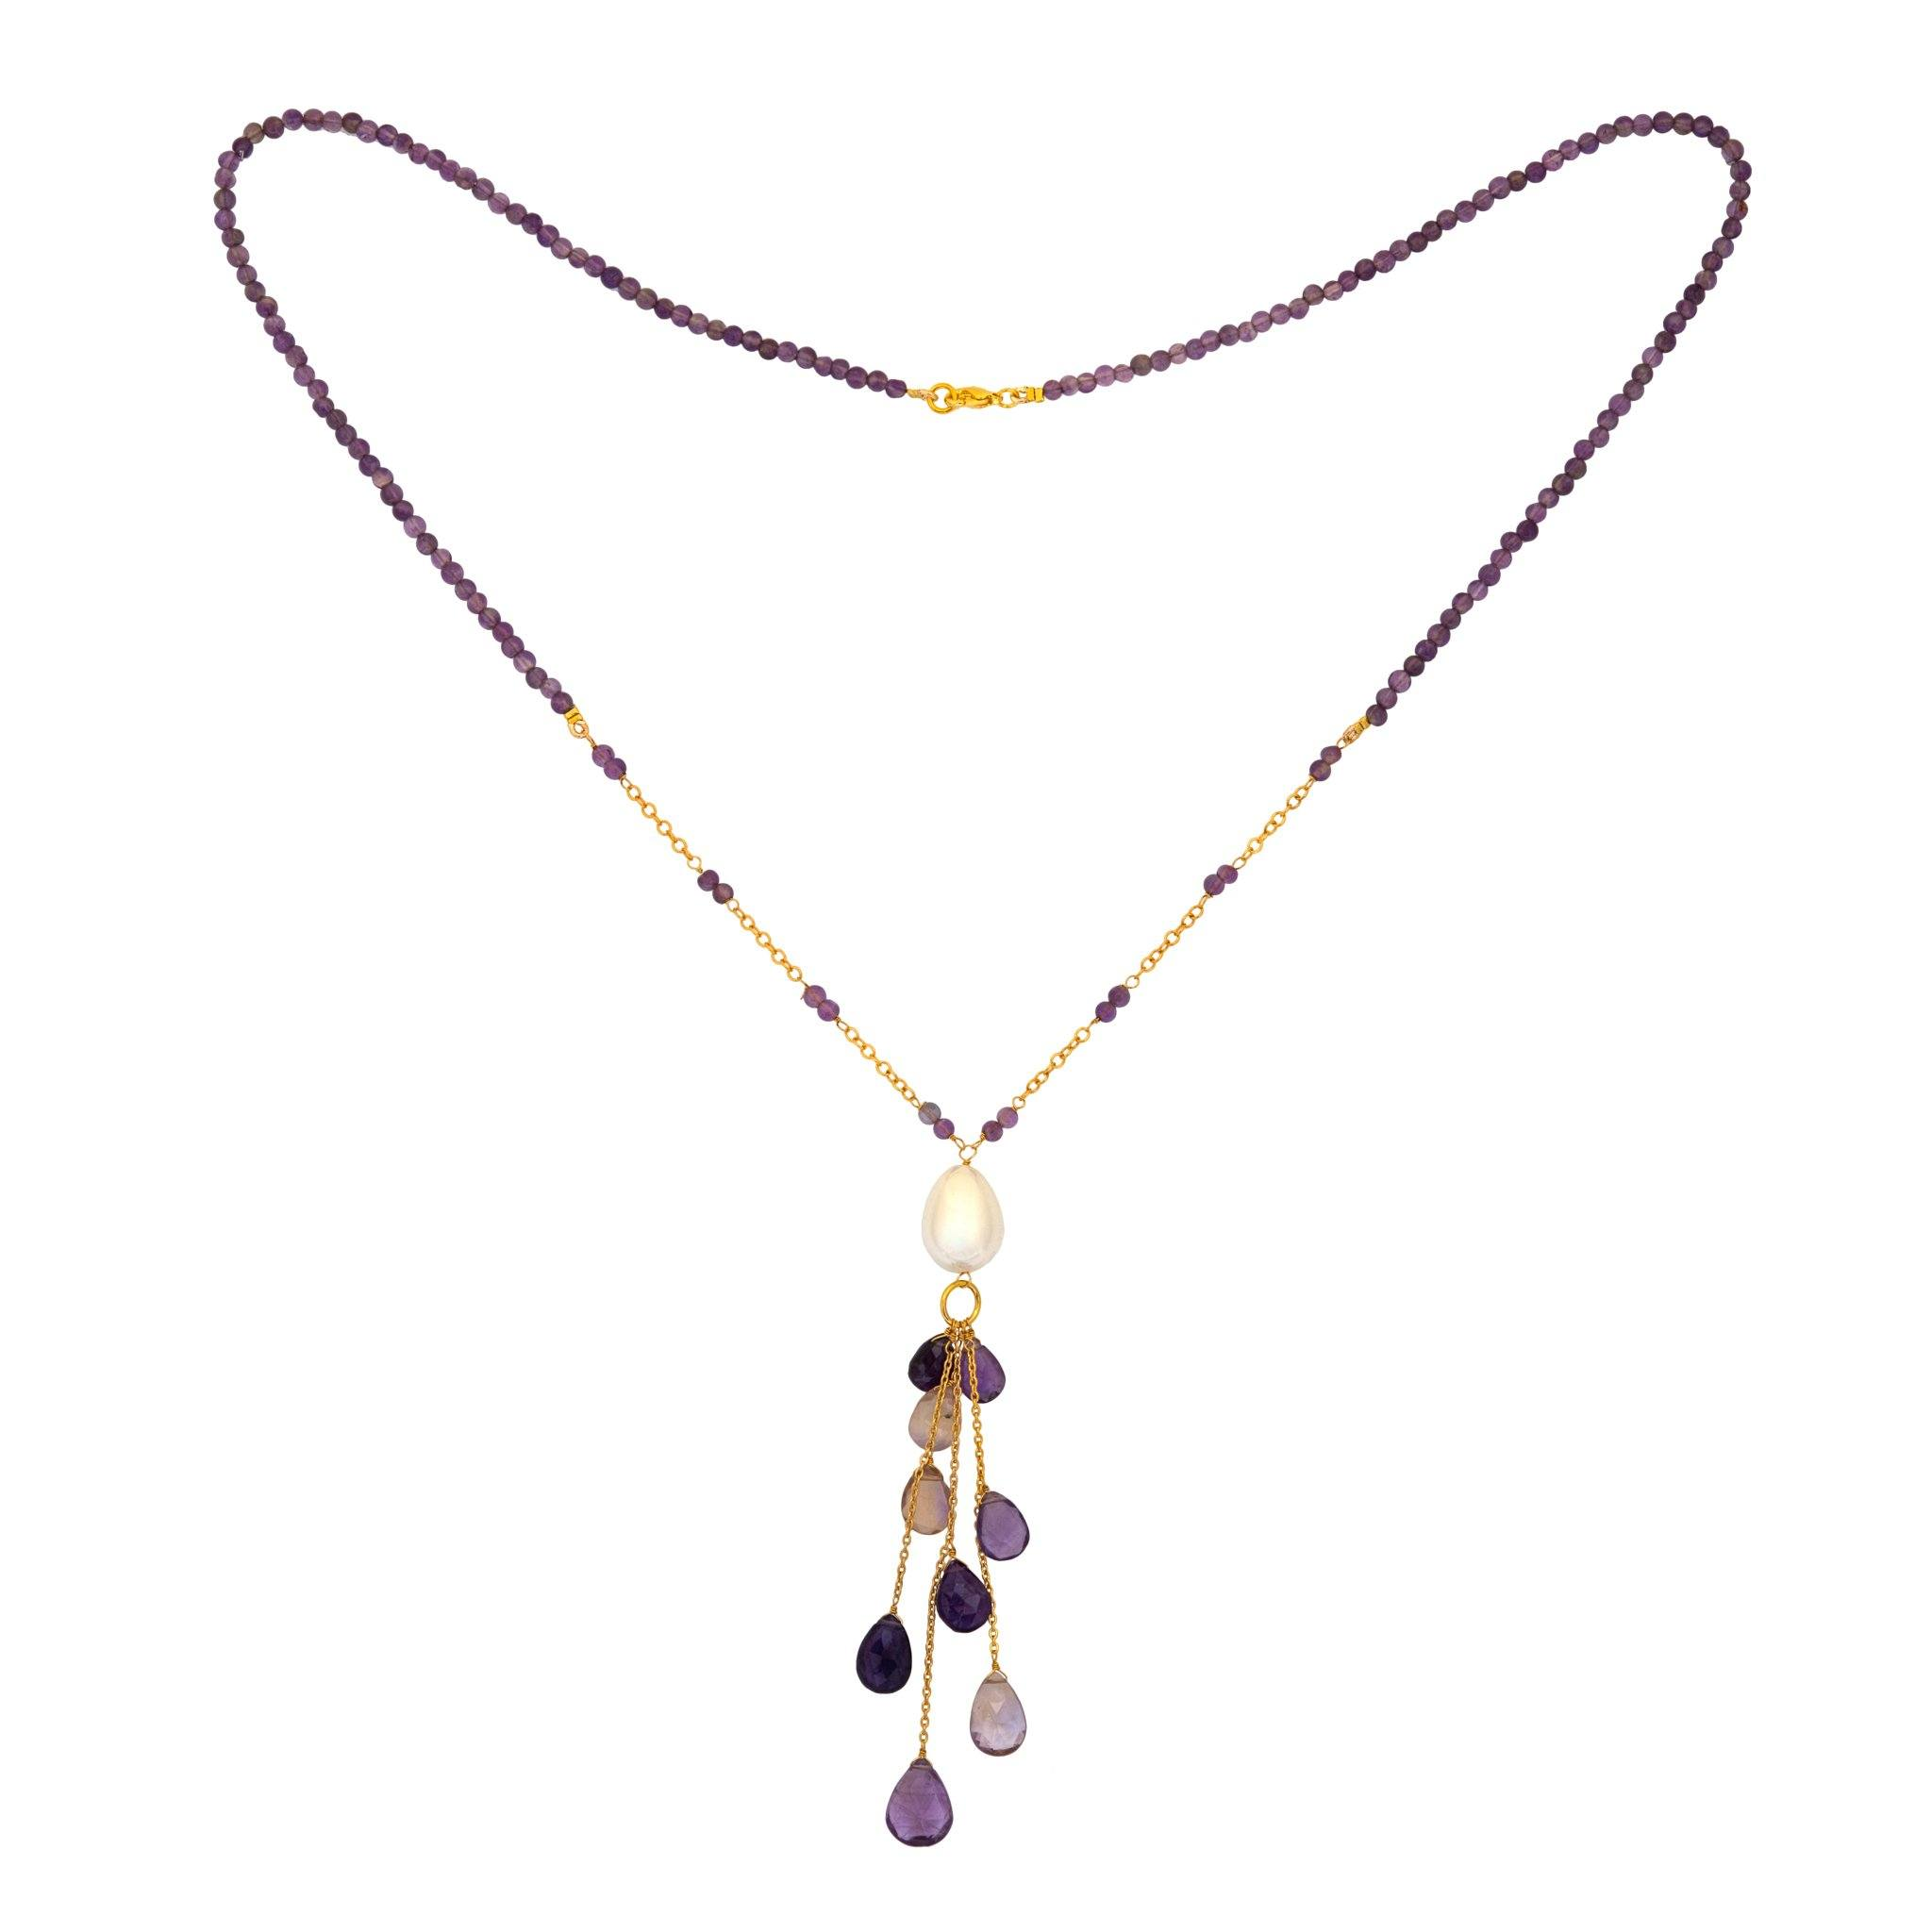 COCO pearl and amethyst necklace with amethyst drops - MadamSiam